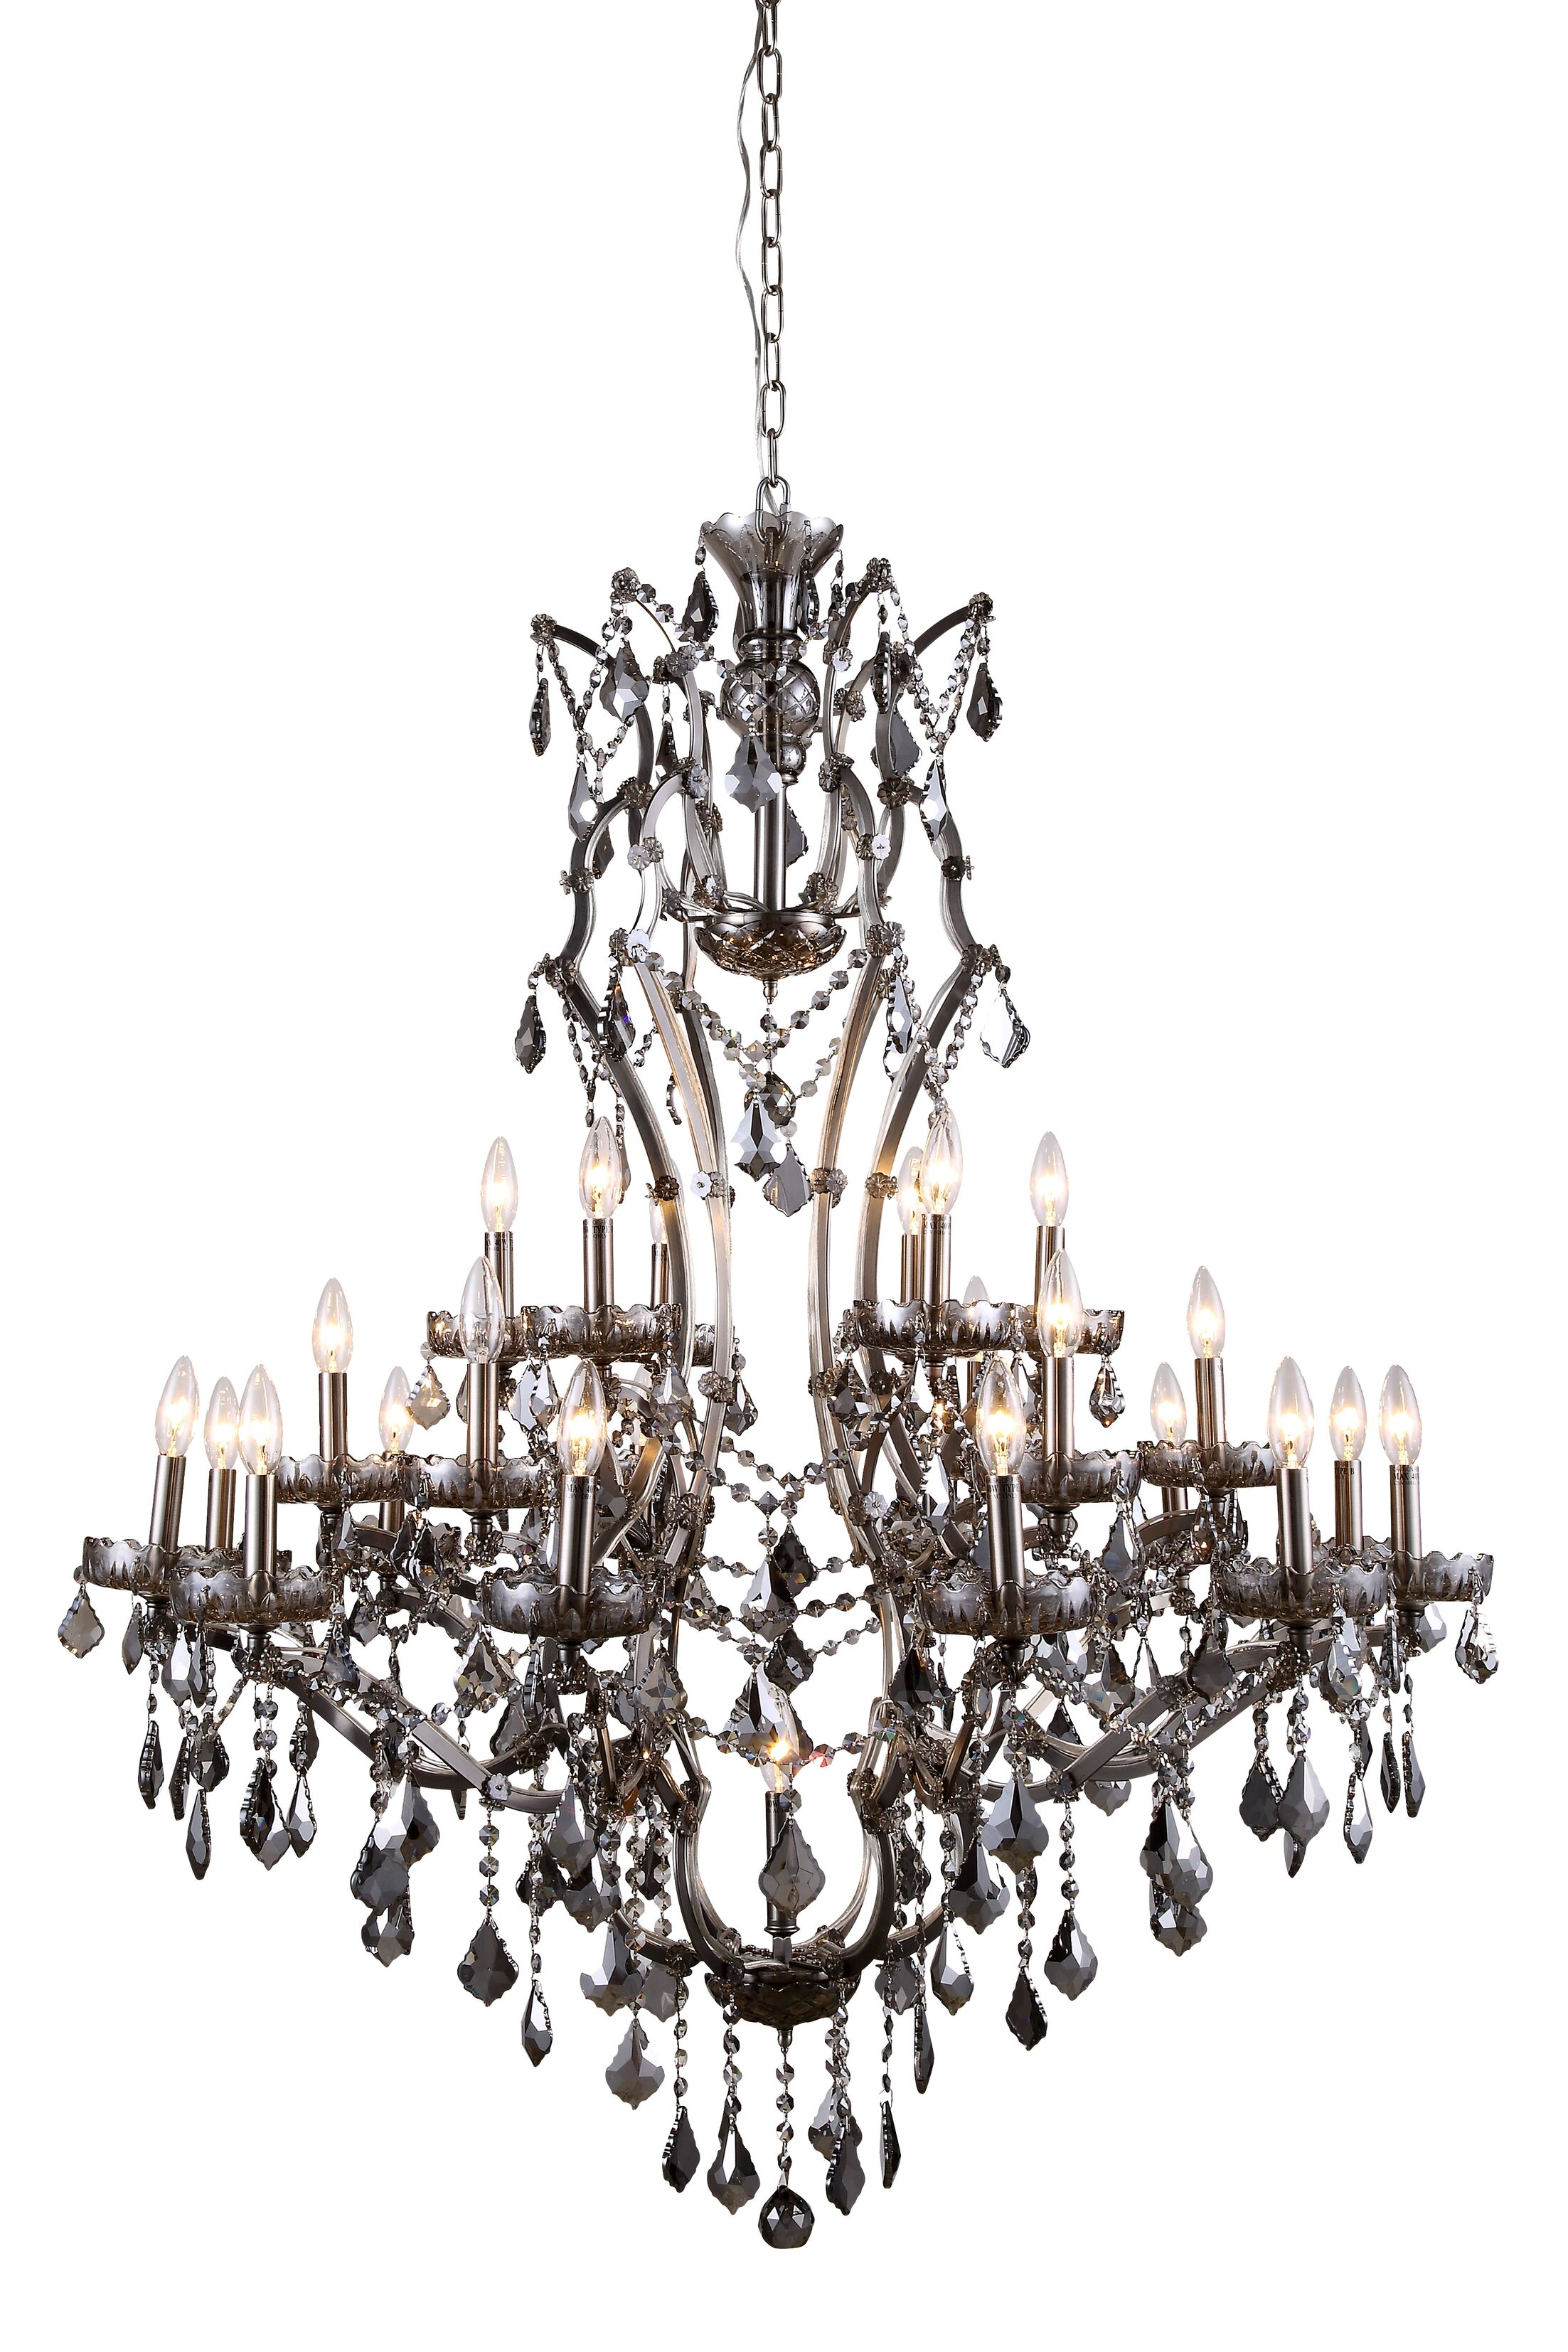 Cora 25-Light Candle Style Chandelier